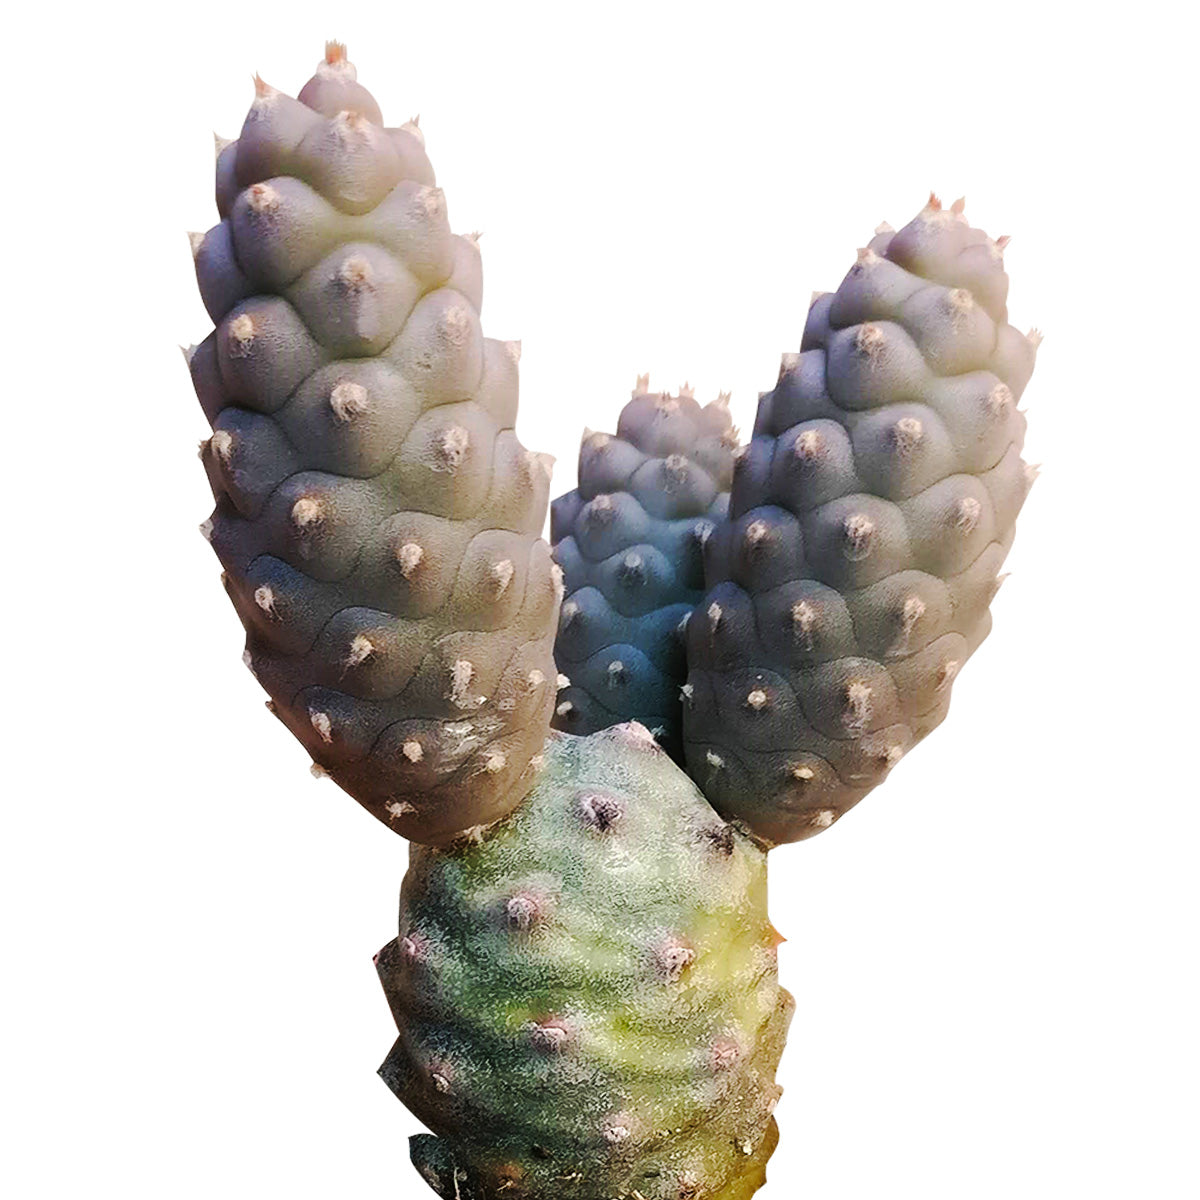 Pine Cone Cactus for sale, Rare succulents, indoor succulents, succulents shop in California, succulent plant, succulents store in CA, succulent care, succulent subscription, succulent care guide, Pine Cone Cactus in California, How to grow Pine Cone Cactus